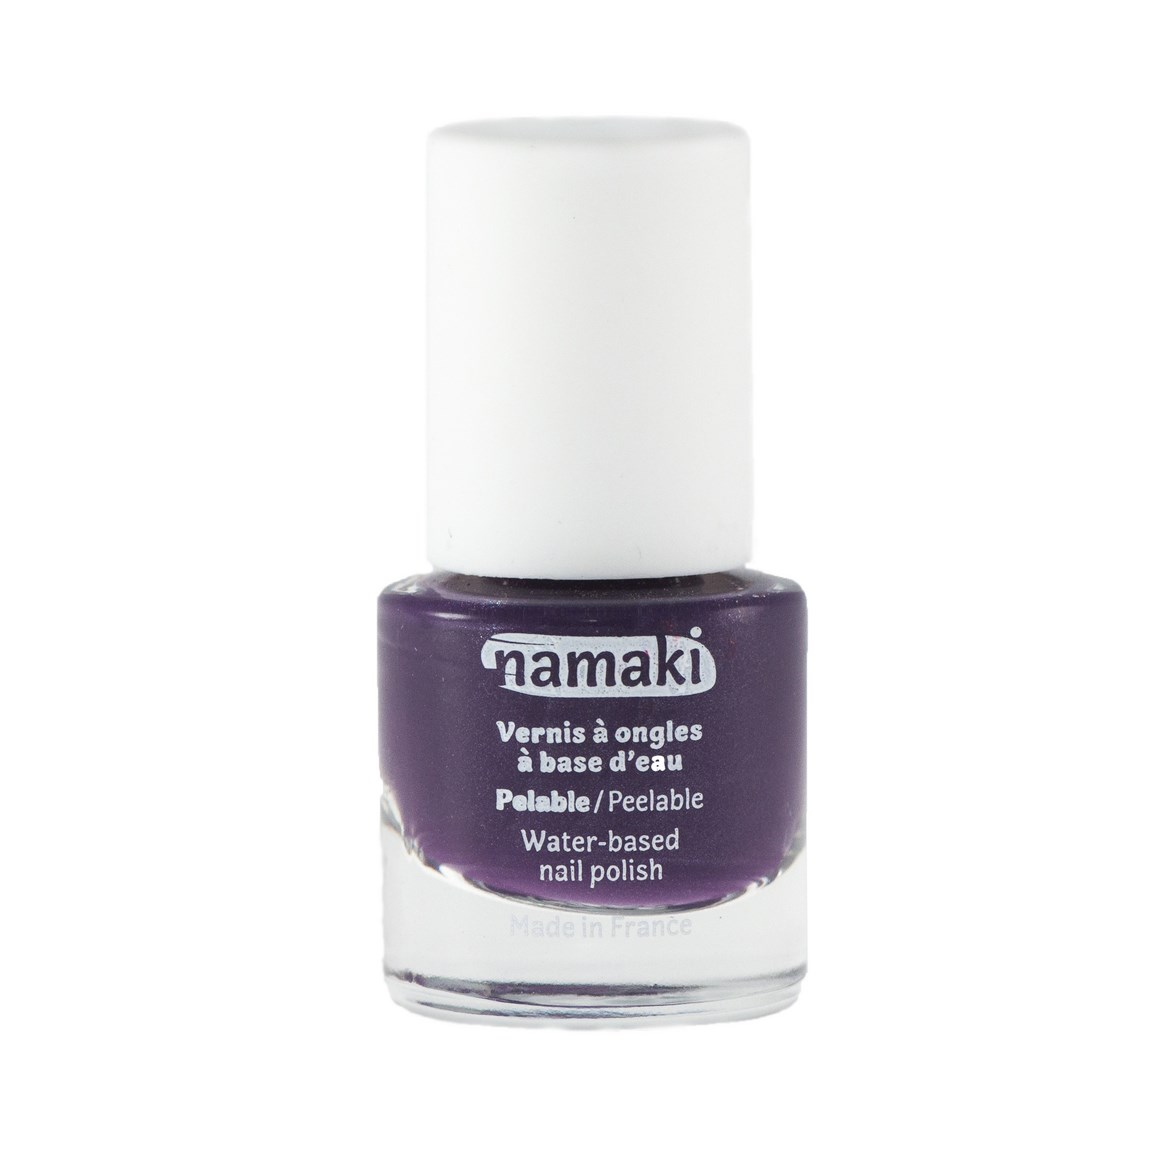 Doux Good - Vernis à ongles Namaki 13 Prune